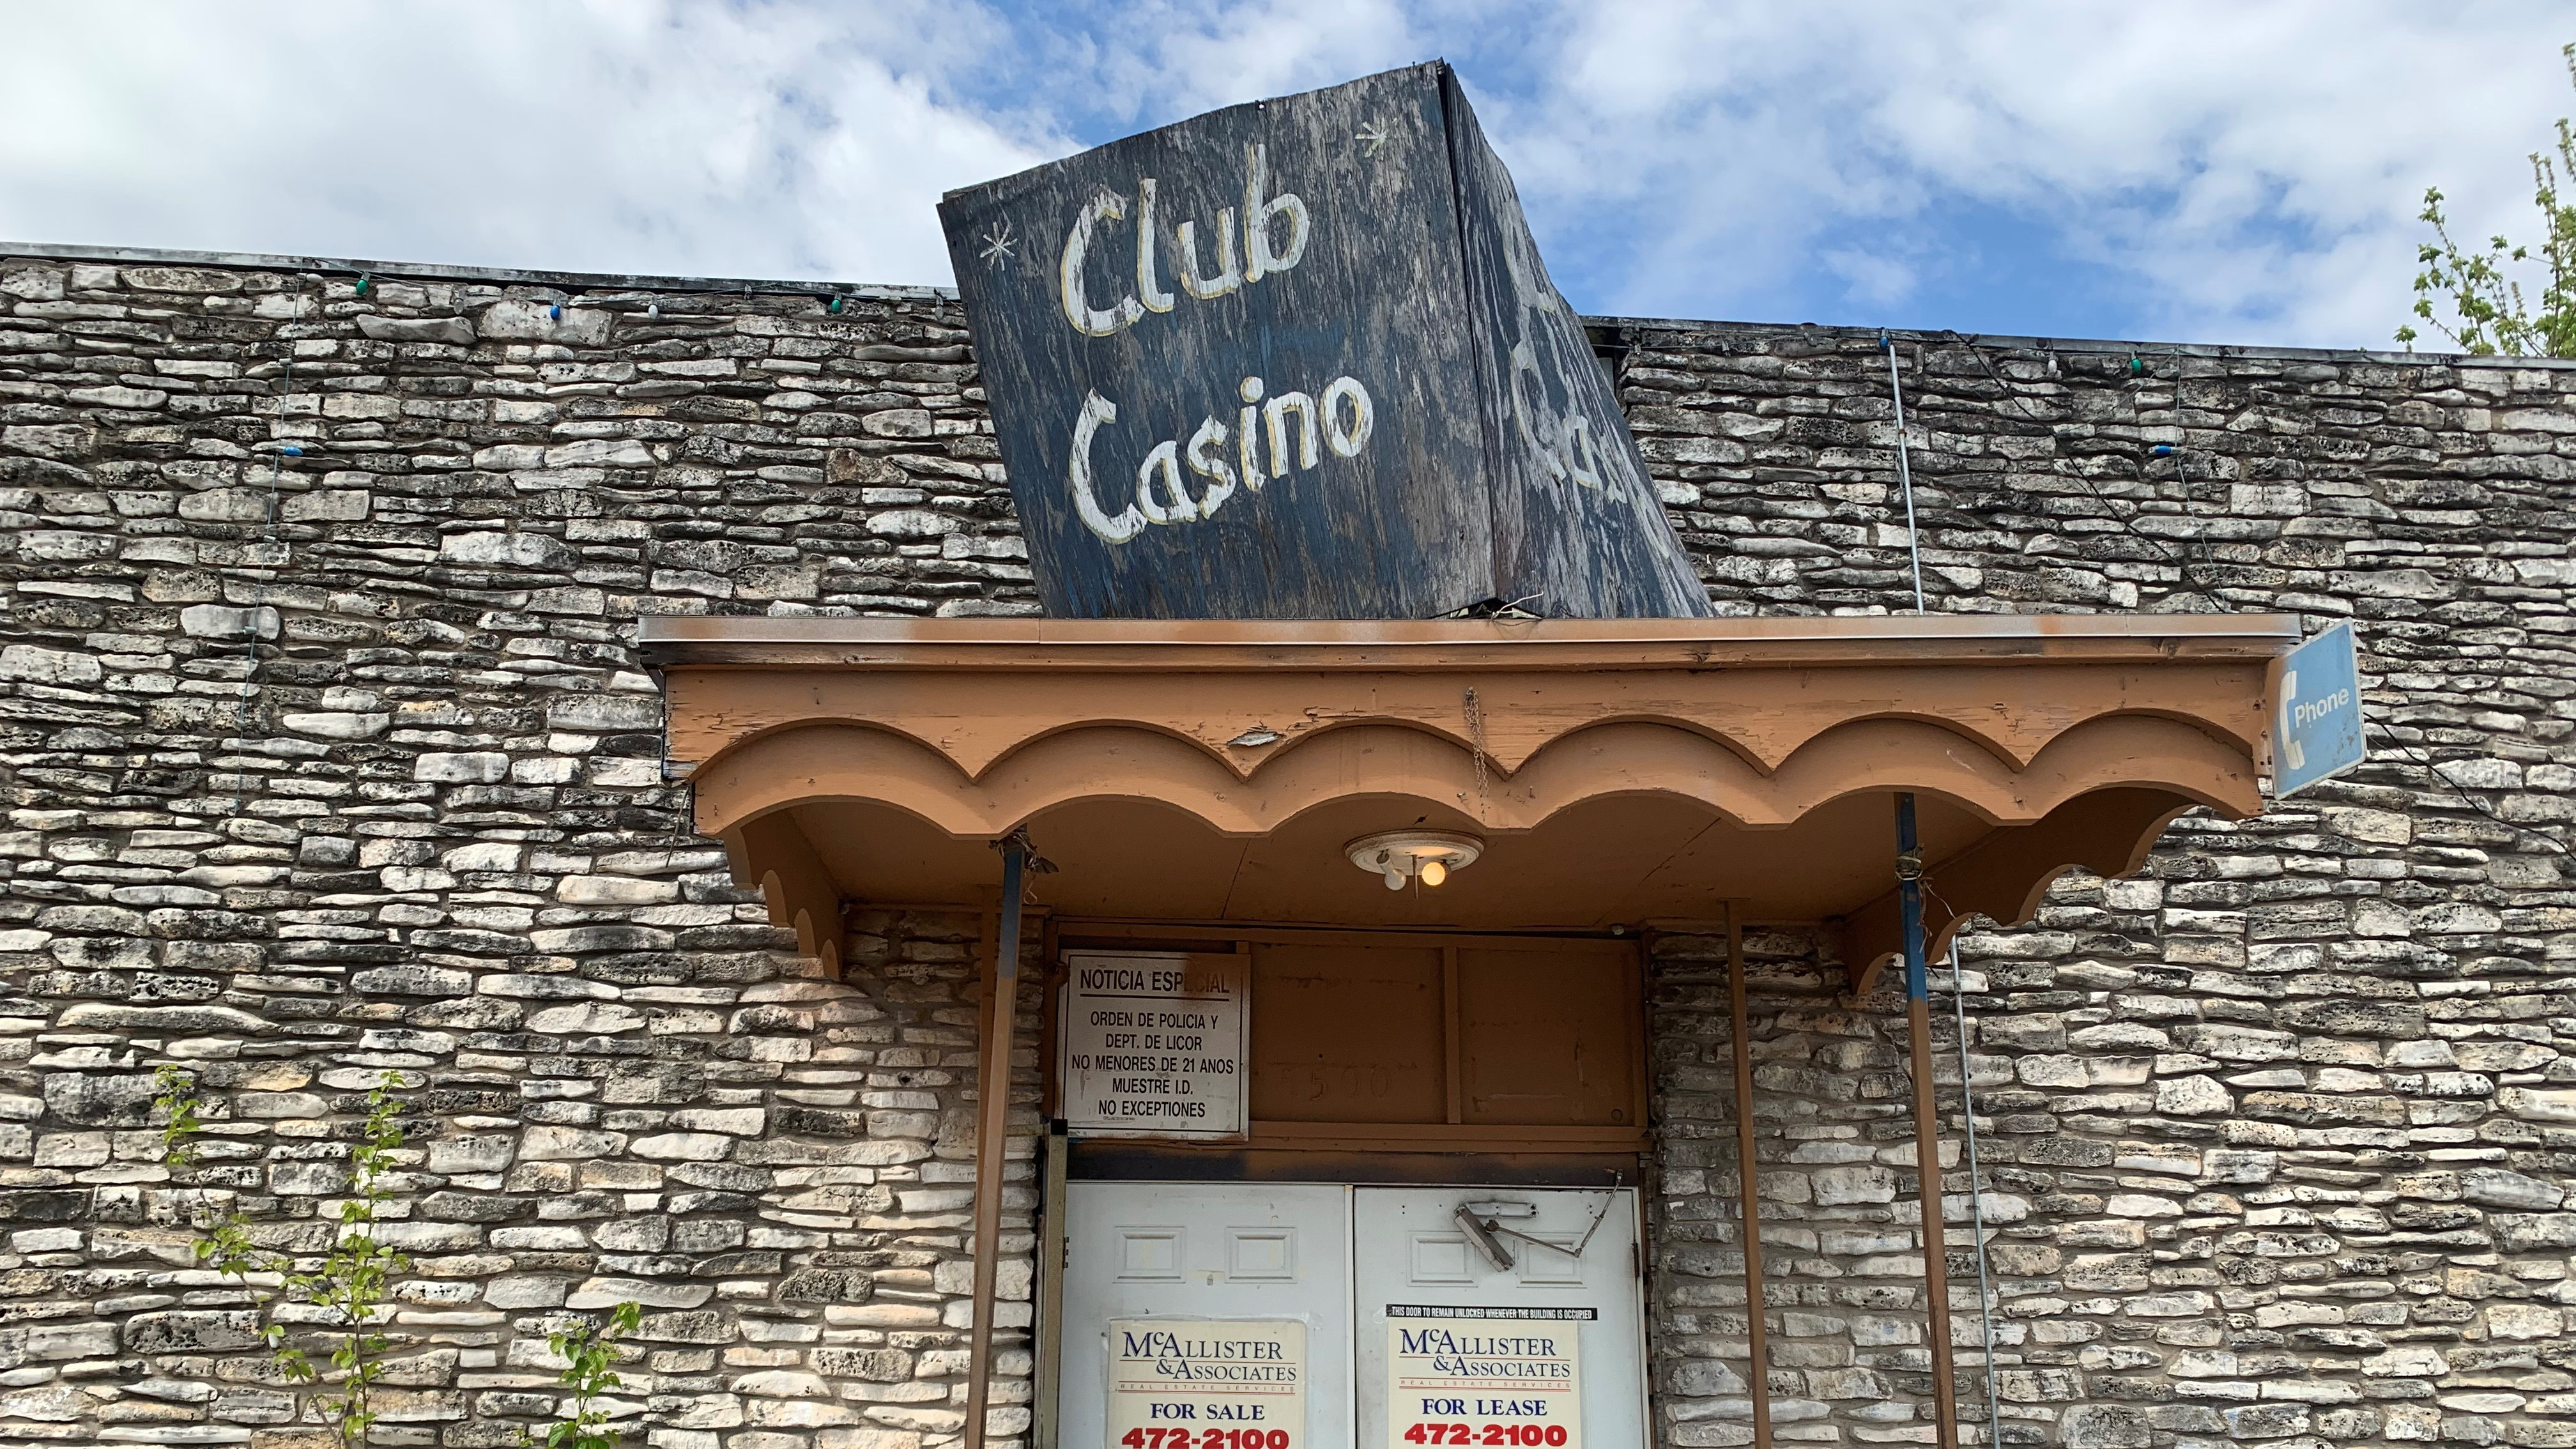 2 local bars shut down for drugs, human trafficking, drink solicitation